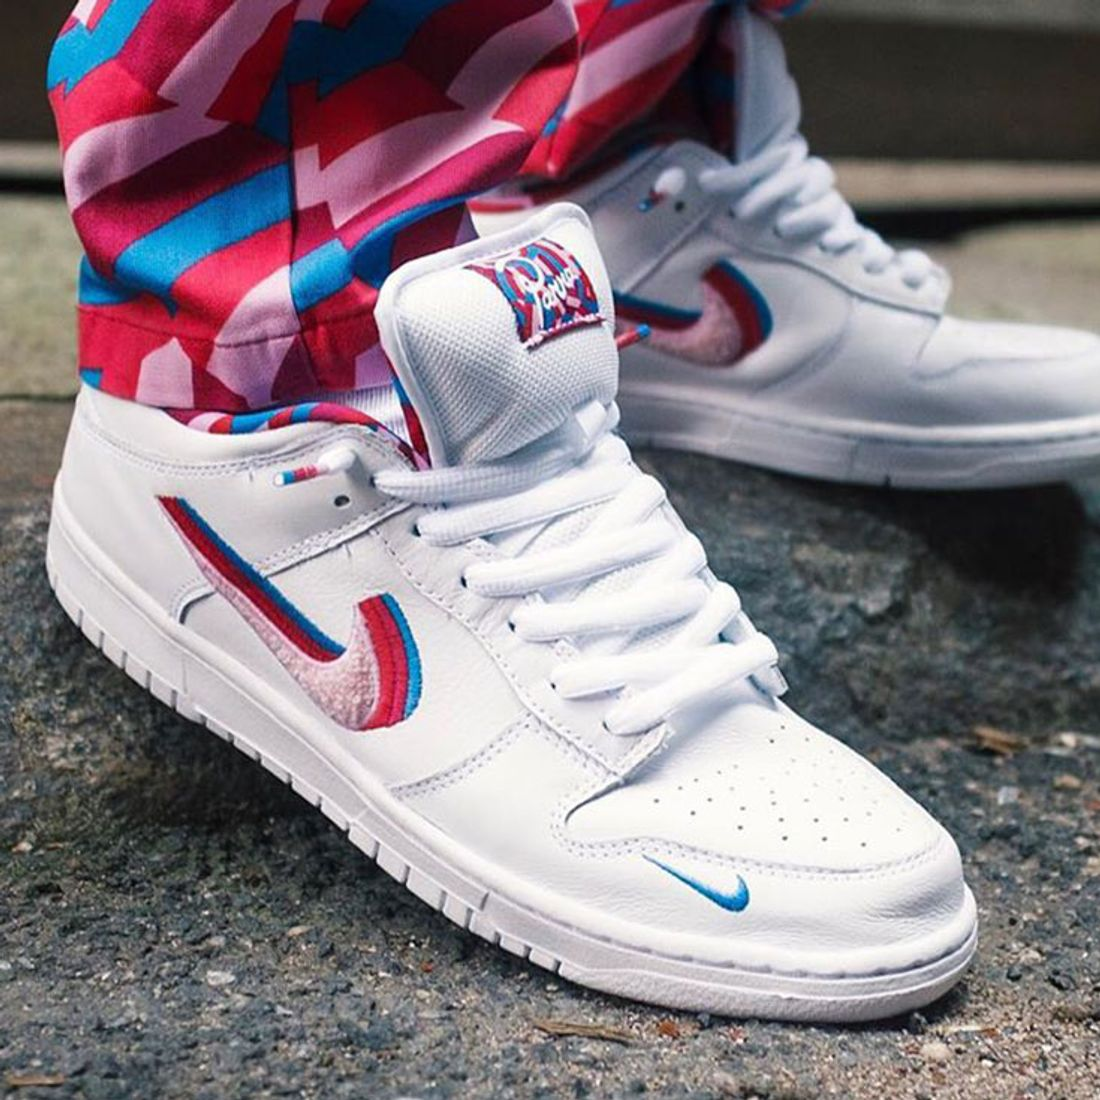 Perforar No se mueve borde  Here's How People are Styling the Parra x Nike SB Collection - Sneaker  Freaker